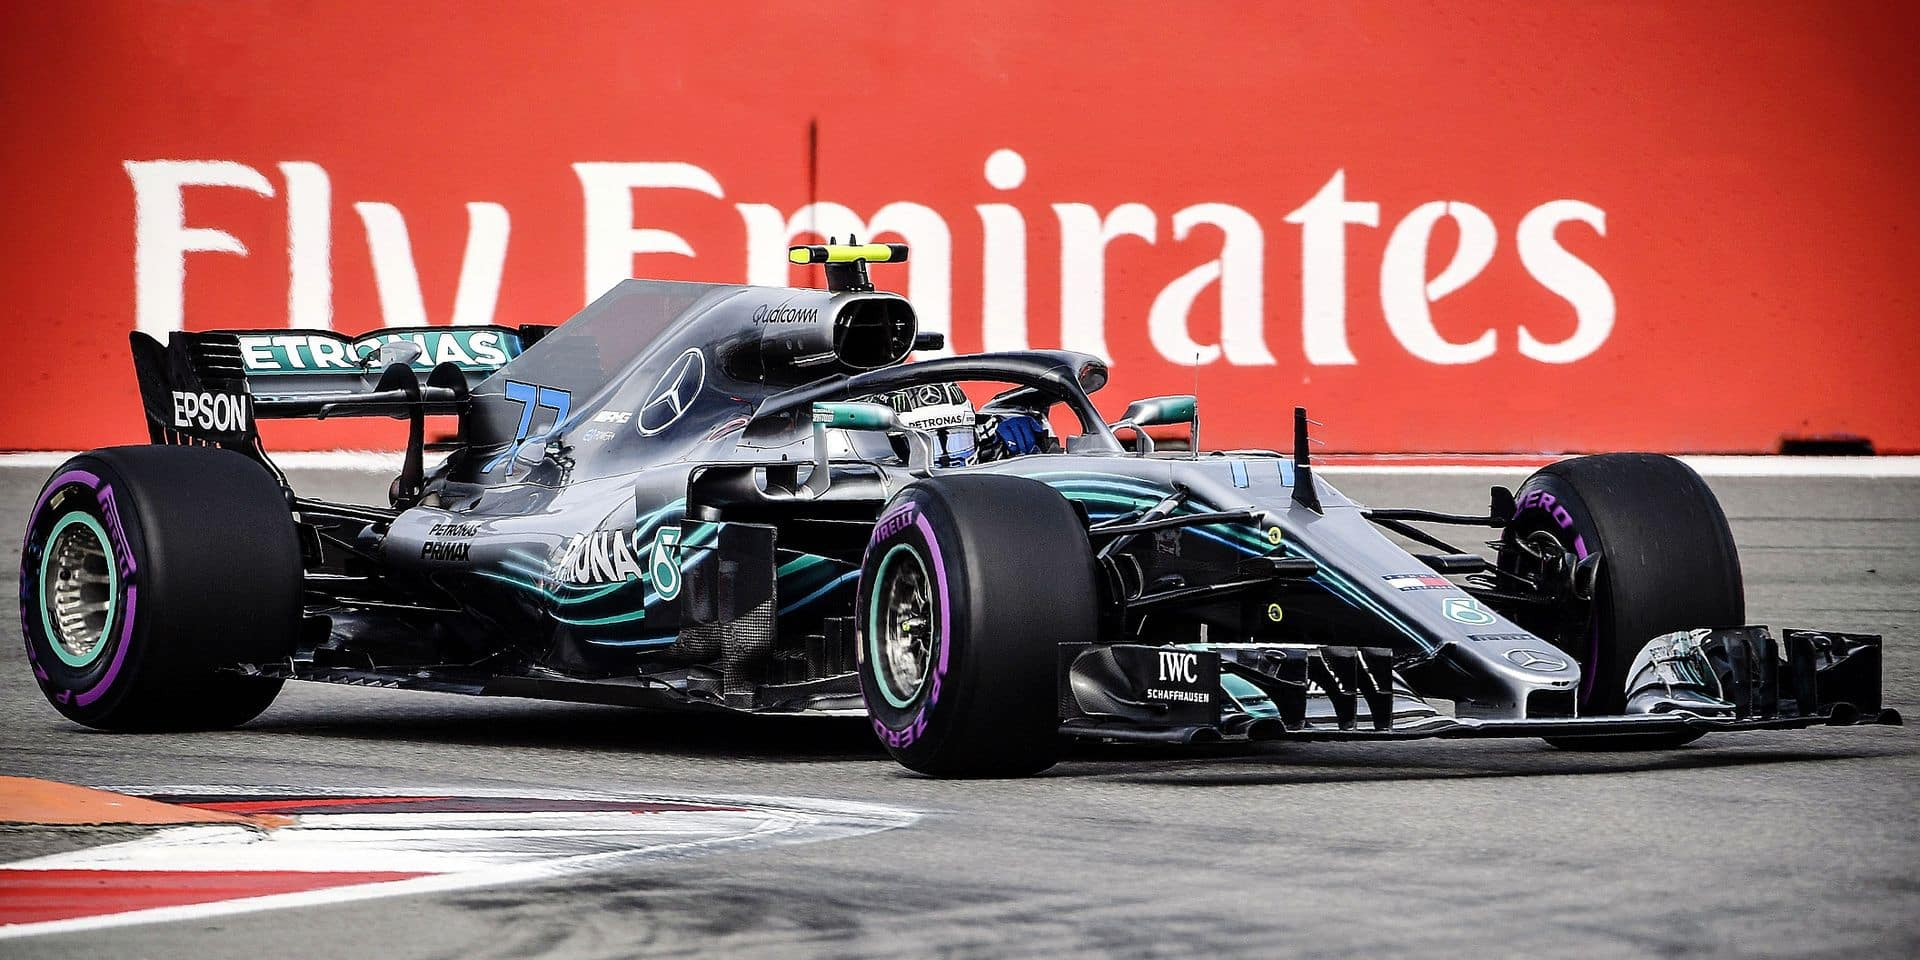 Mercedes' Finnish driver Valtteri Bottas steers his car during the first practice session of the Formula One Russian Grand Prix at the Sochi Autodrom circuit in Sochi on September 28, 2018. (Photo by Alexander NEMENOV / AFP)